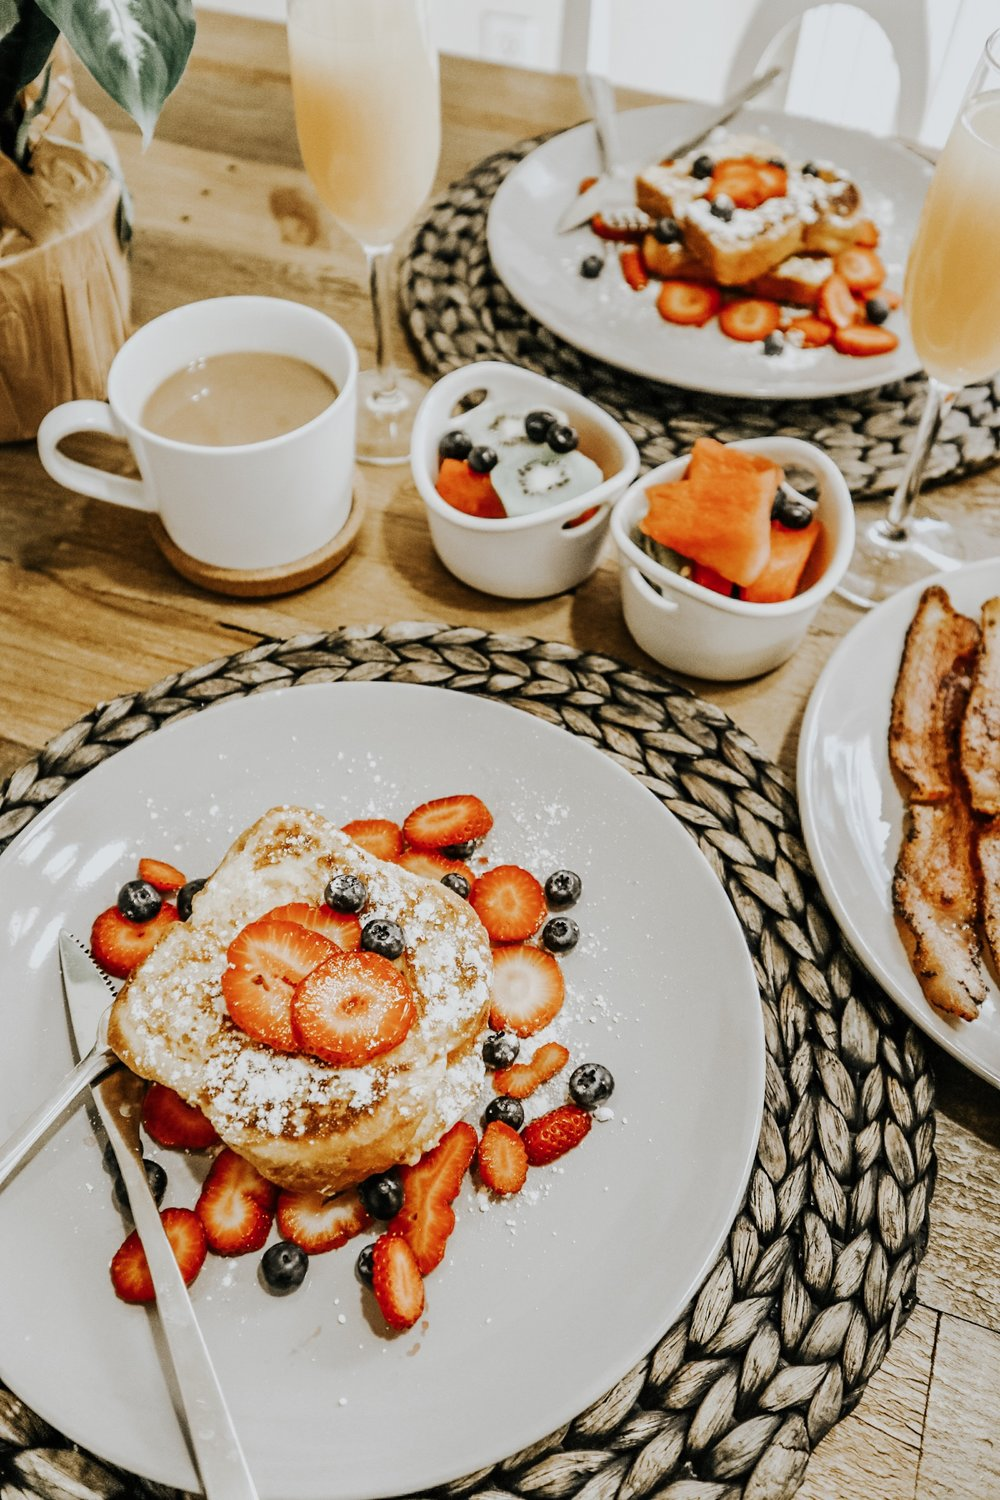 Sunday Brunch - how to make strawberry french toast and veggie scrambled eggs